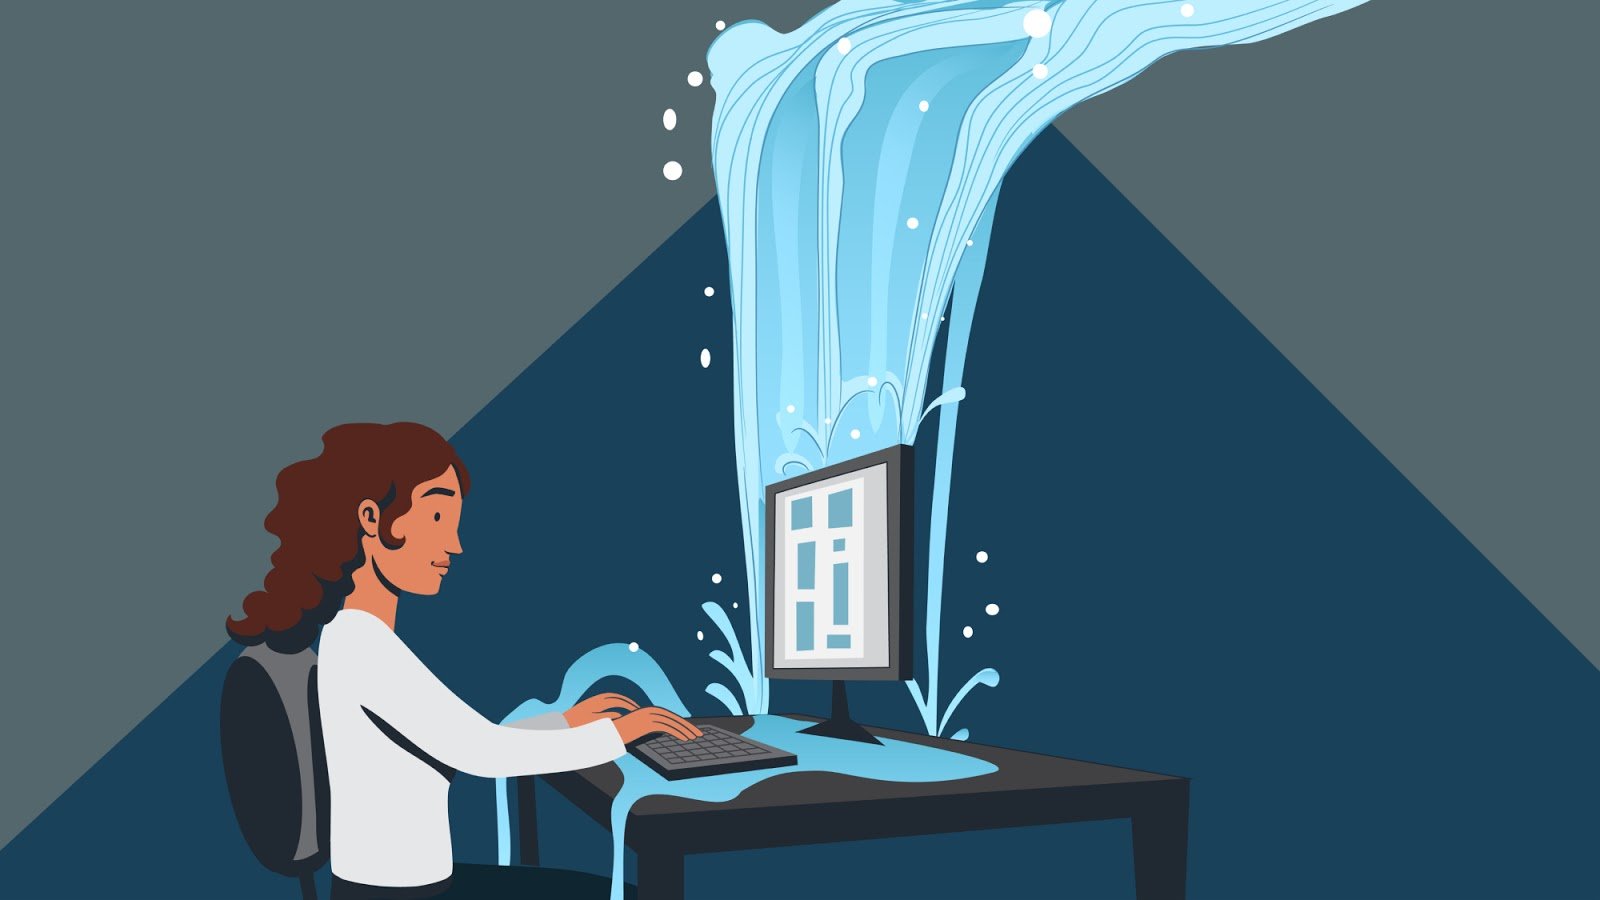 Illustration of a person at a computer with a rush of water coming in to represent income from affiliate marketing